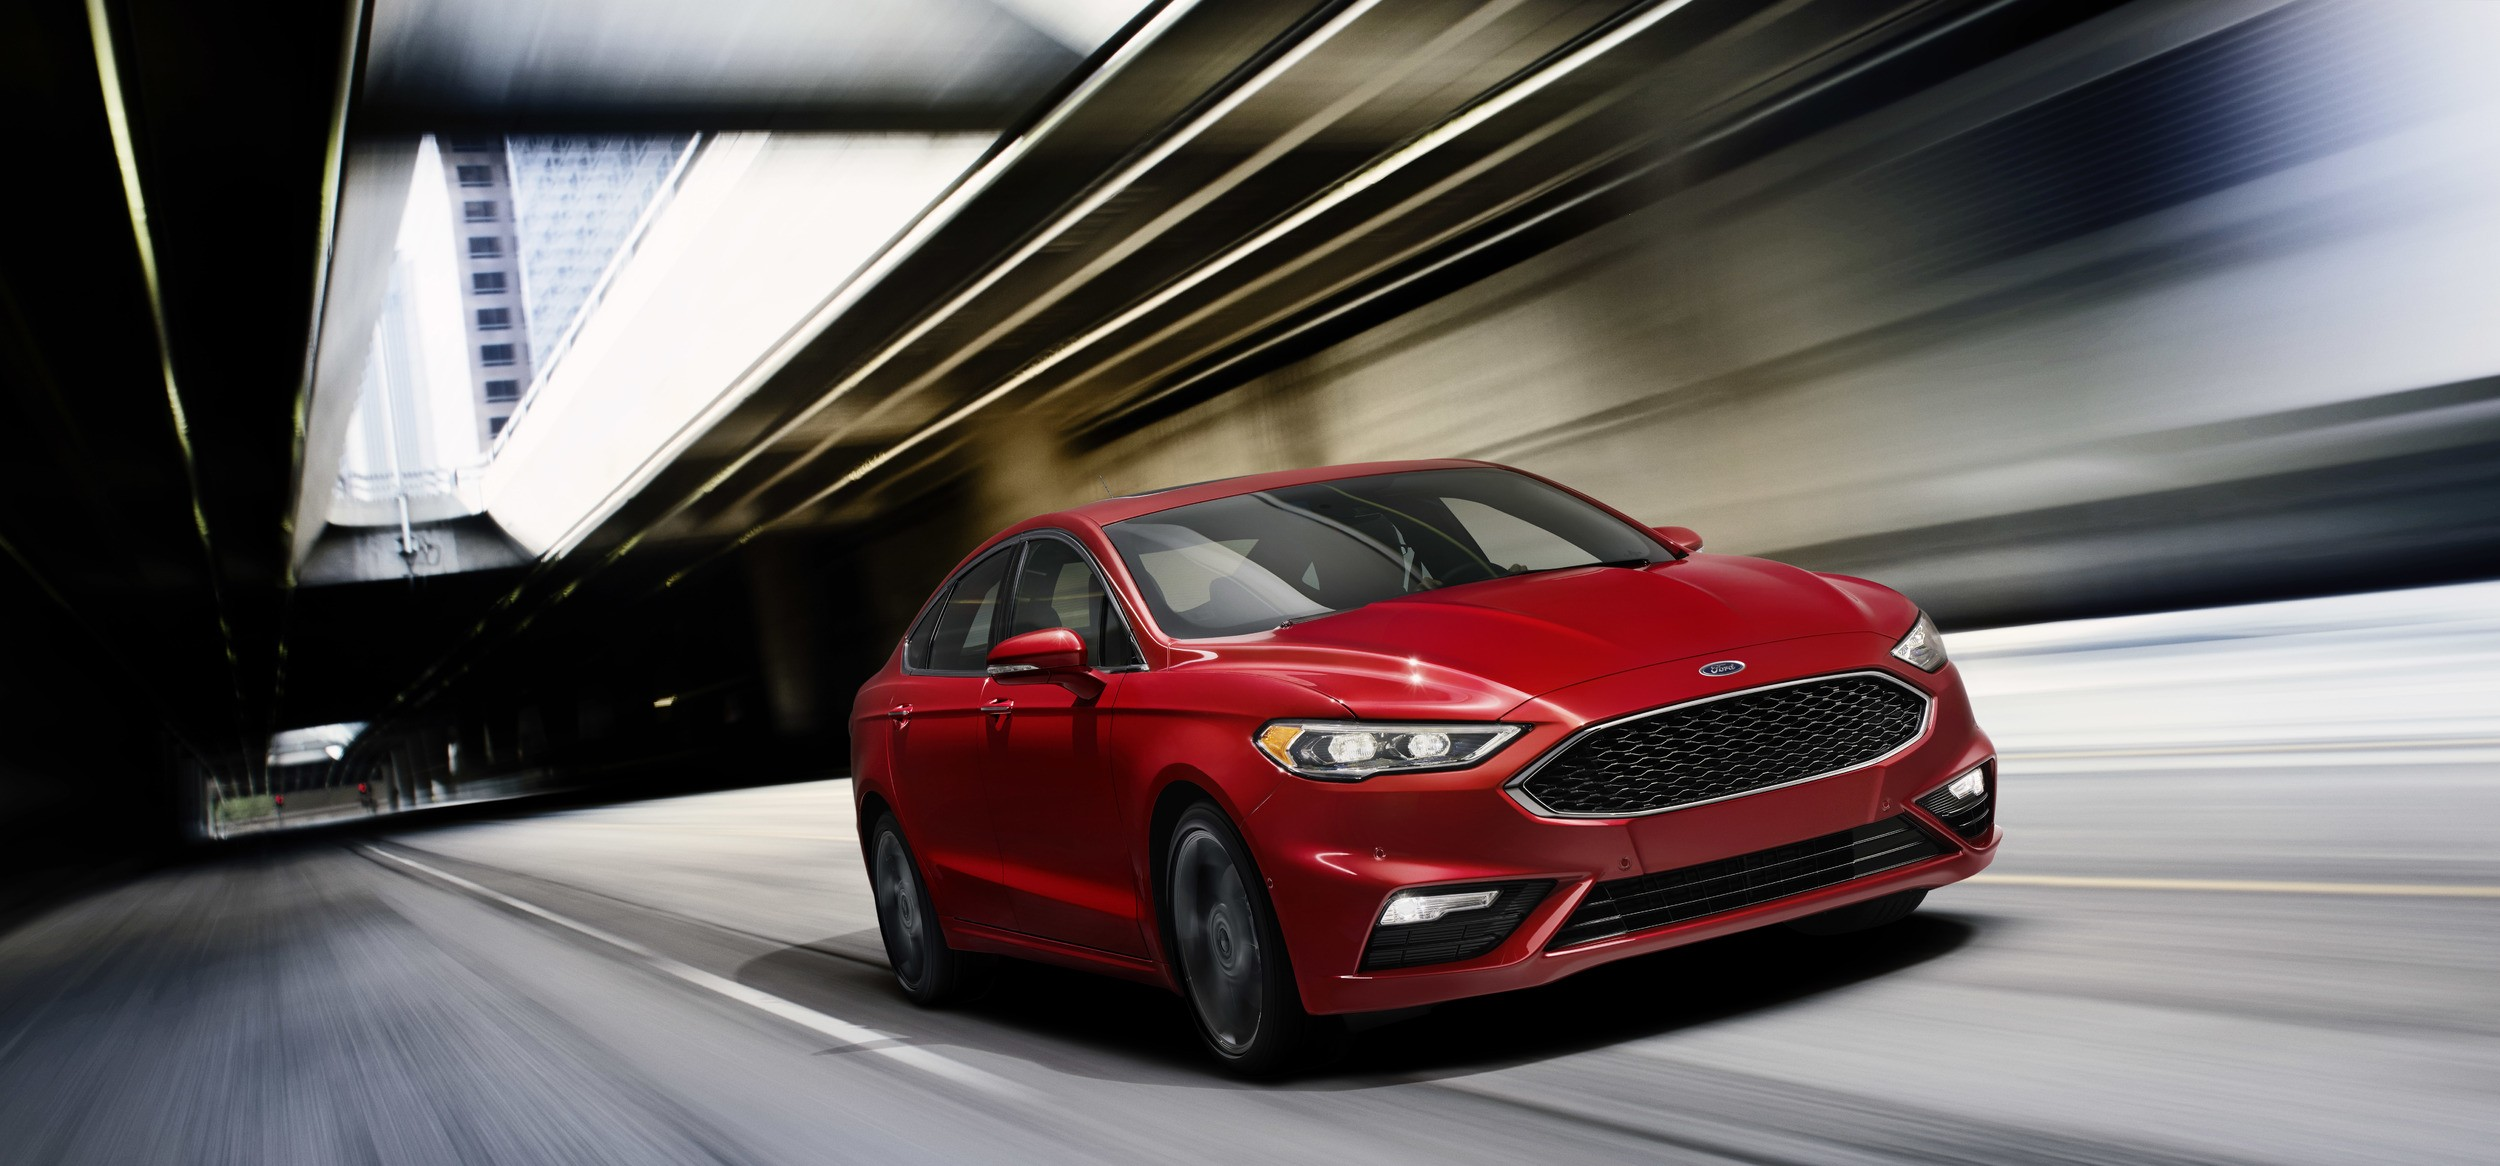 Pothole Mitigation Technology Arrives This Summer On The Ford Fusion Hp Ken V6 2017 Sport